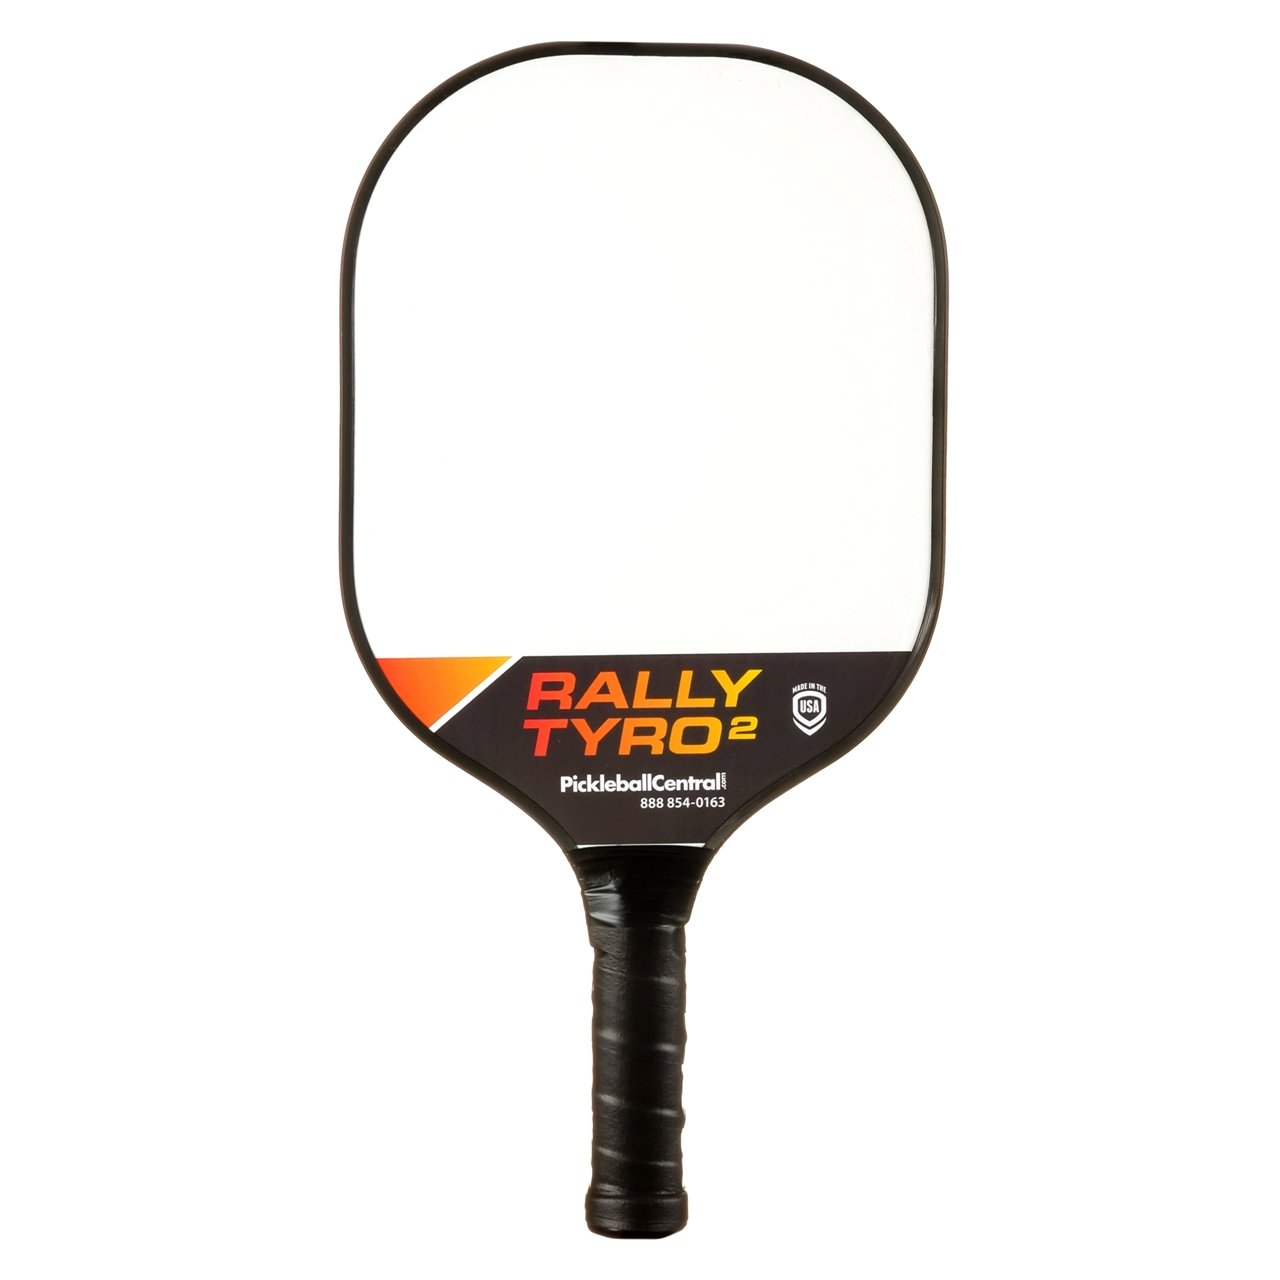 Rally Tyro 2 Advanced Composite Pickleball Paddle by PickleballCentral